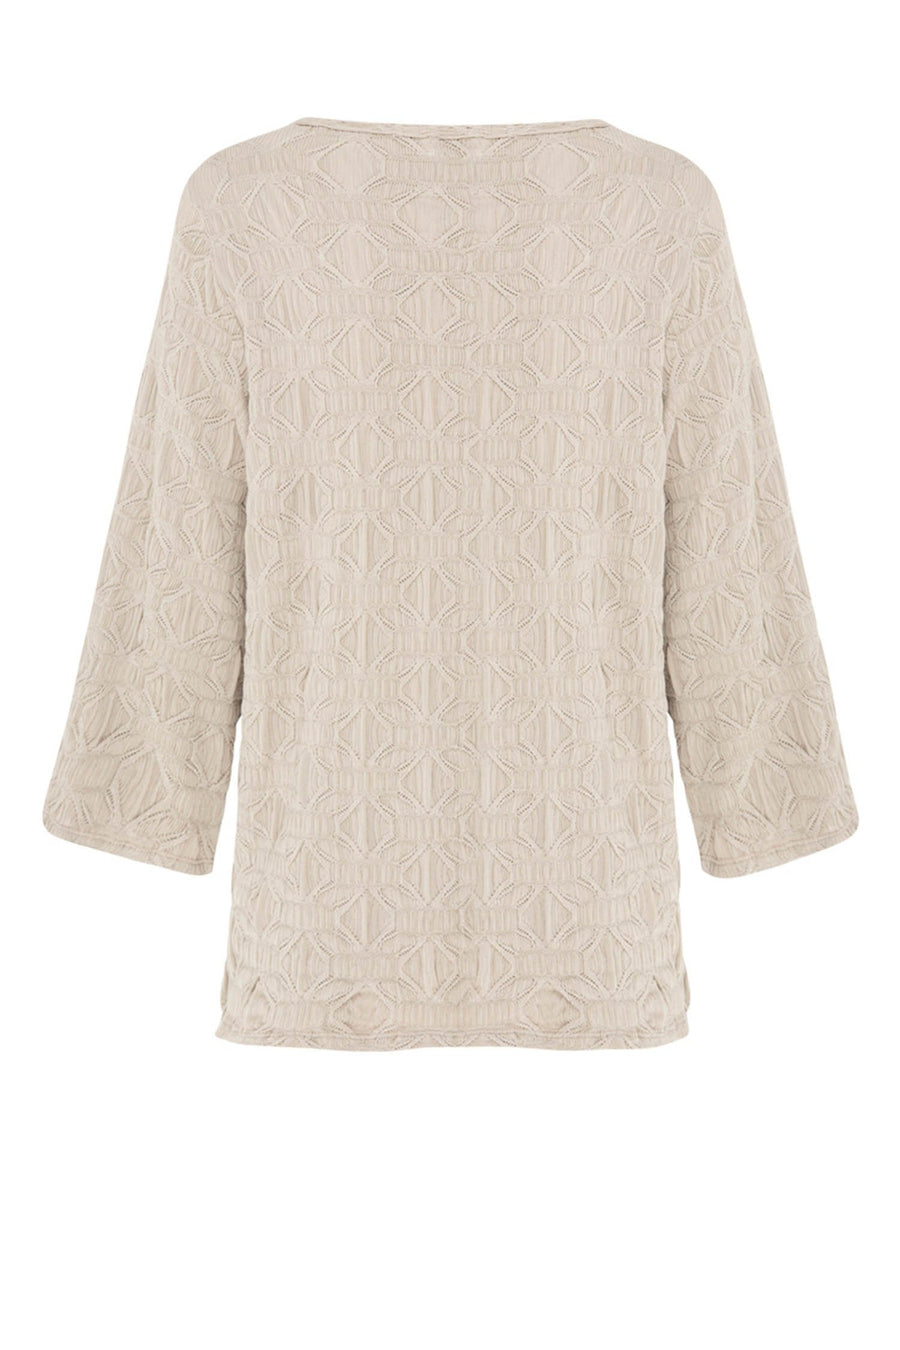 Spa Top in Macrame Jacquard